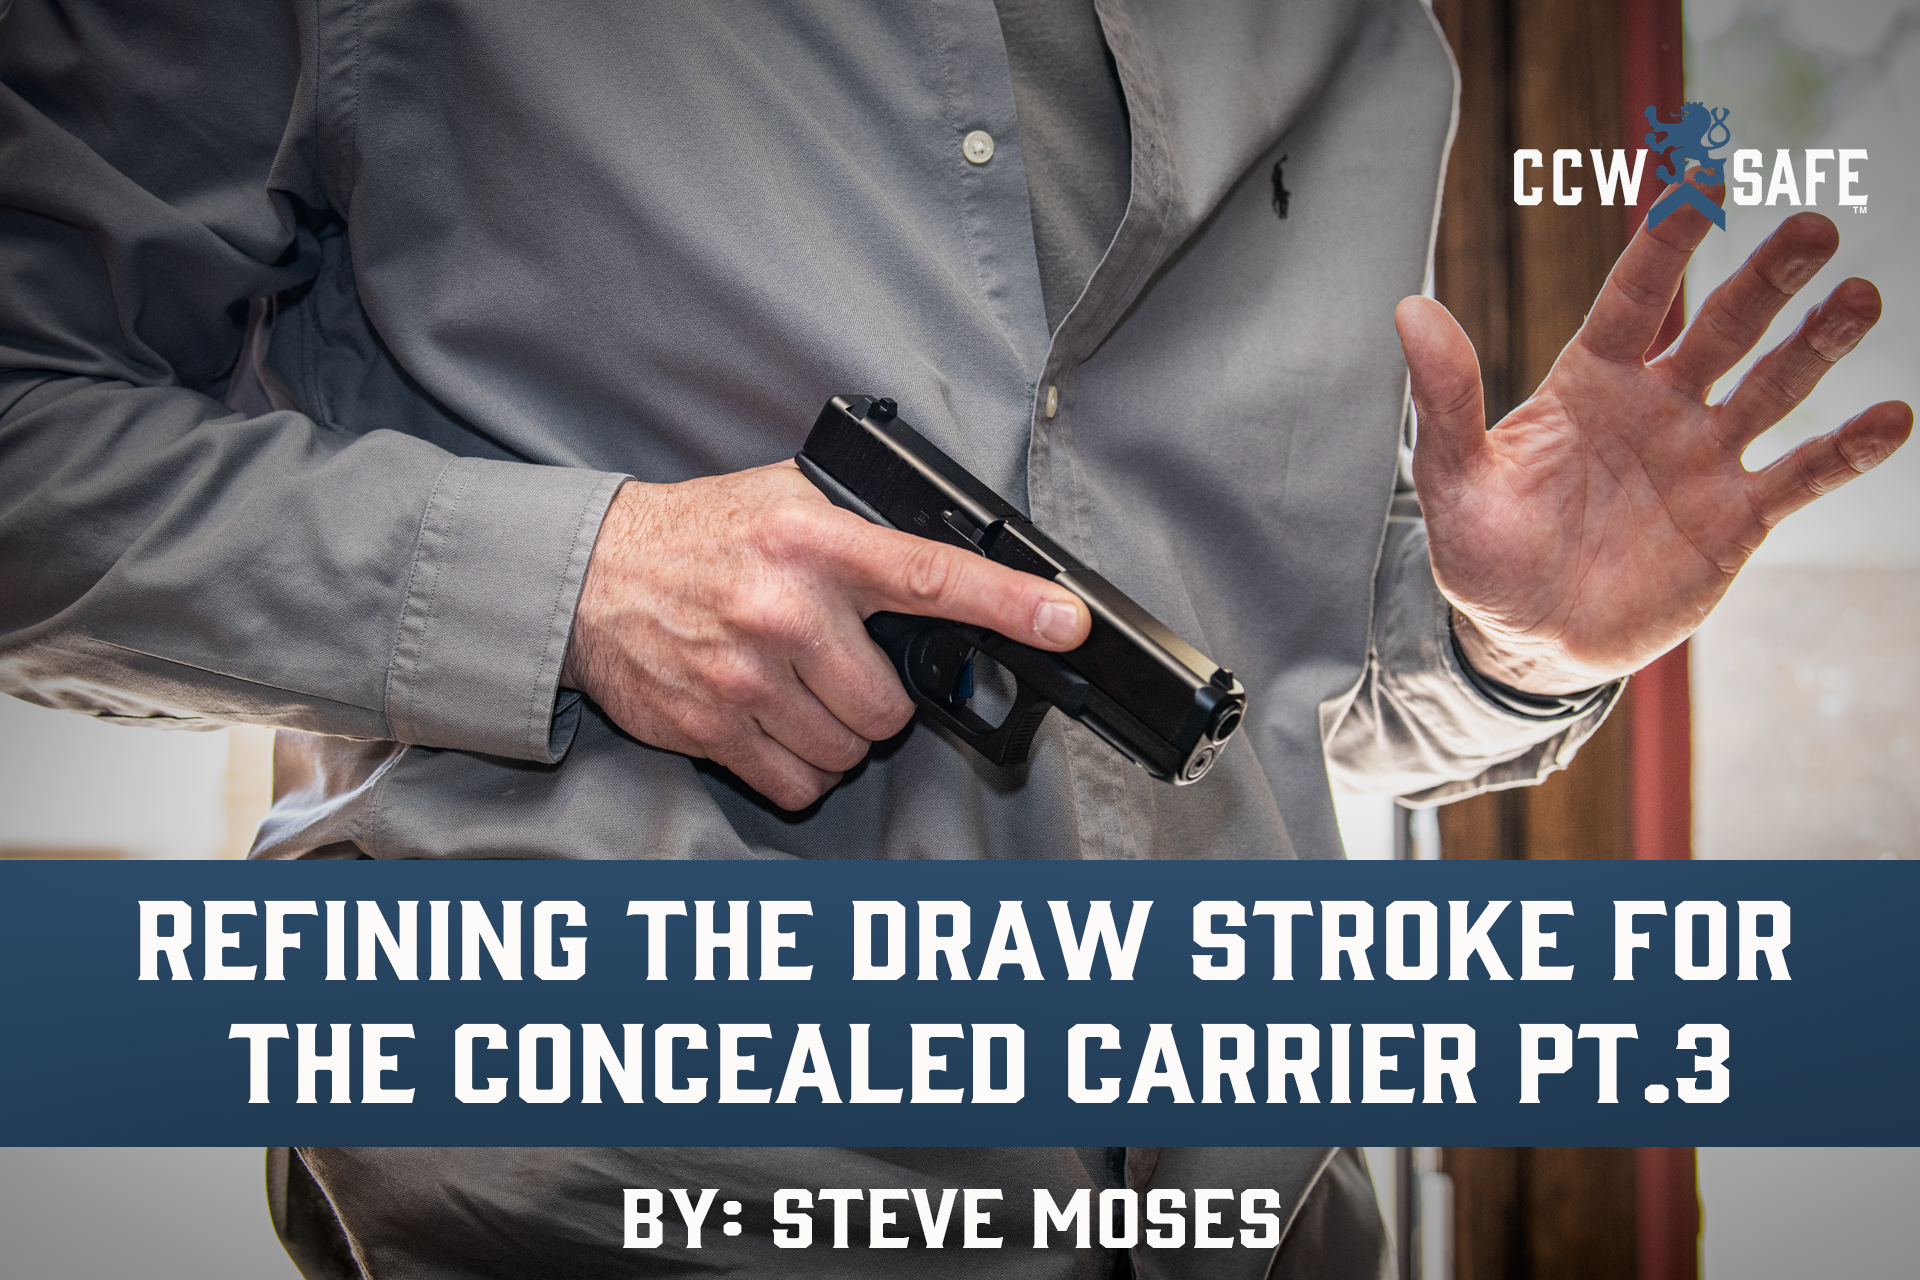 REFINING THE DRAW STROKE FOR THE CONCEALED CARRIER PT.3